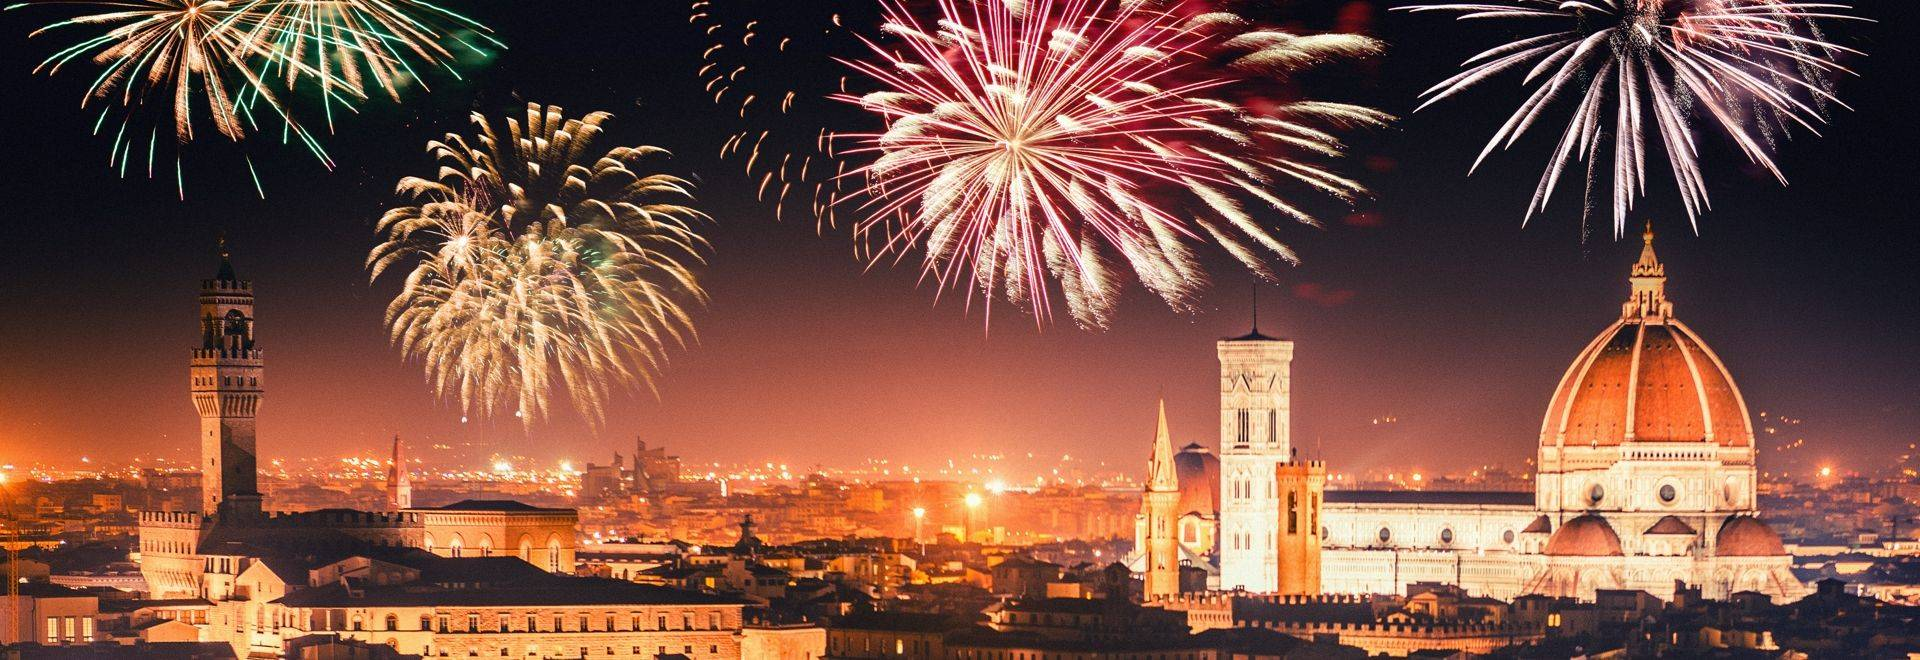 Fireworks at New Year in the Tuscan city of Florence, Italy